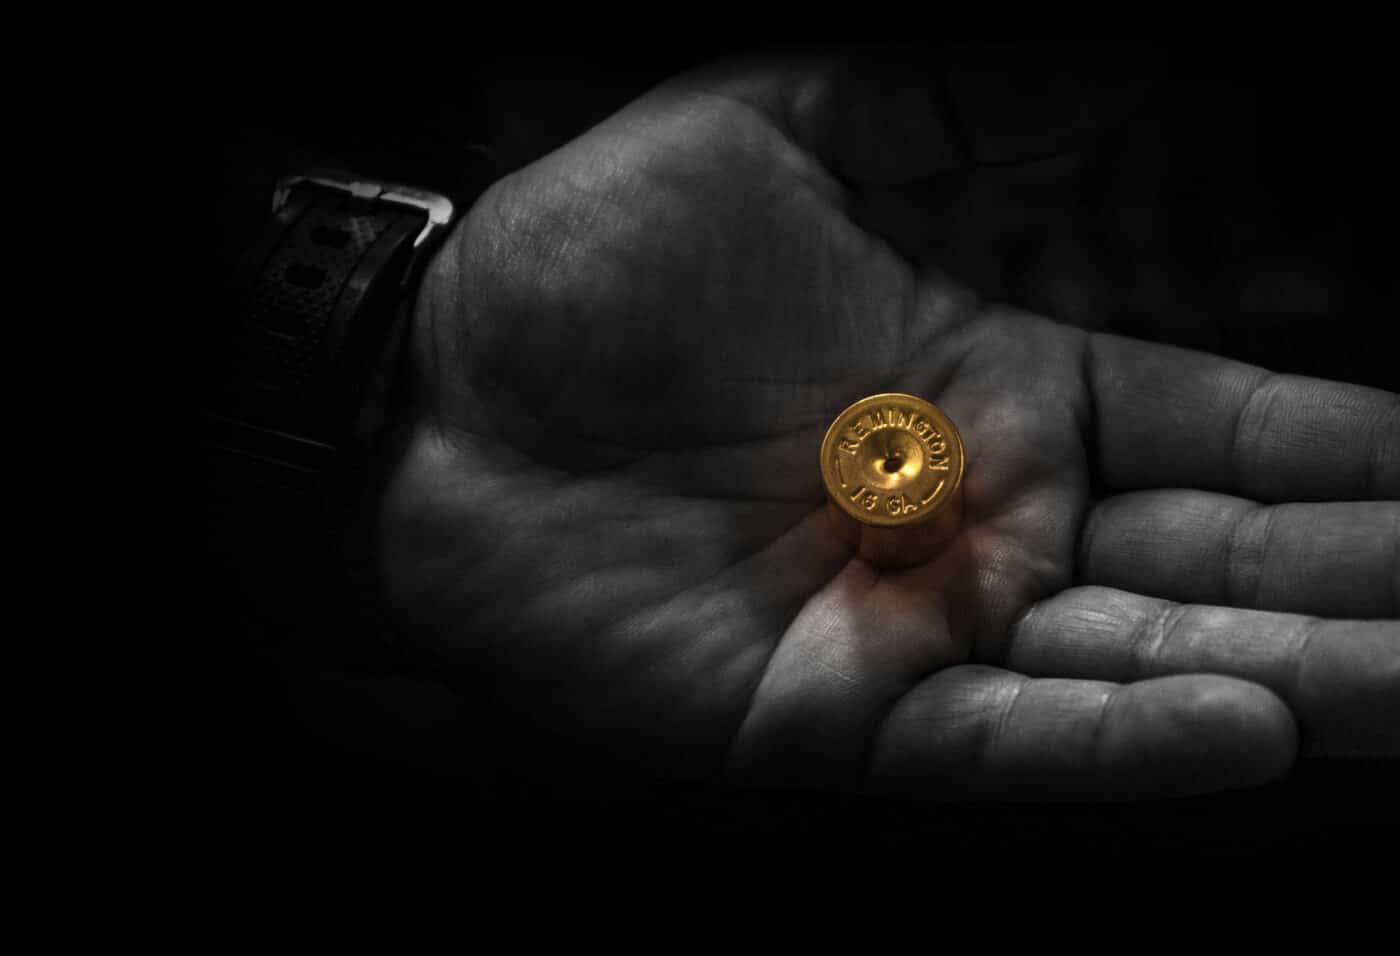 Person's hand holding part of a Remington shotgun shell